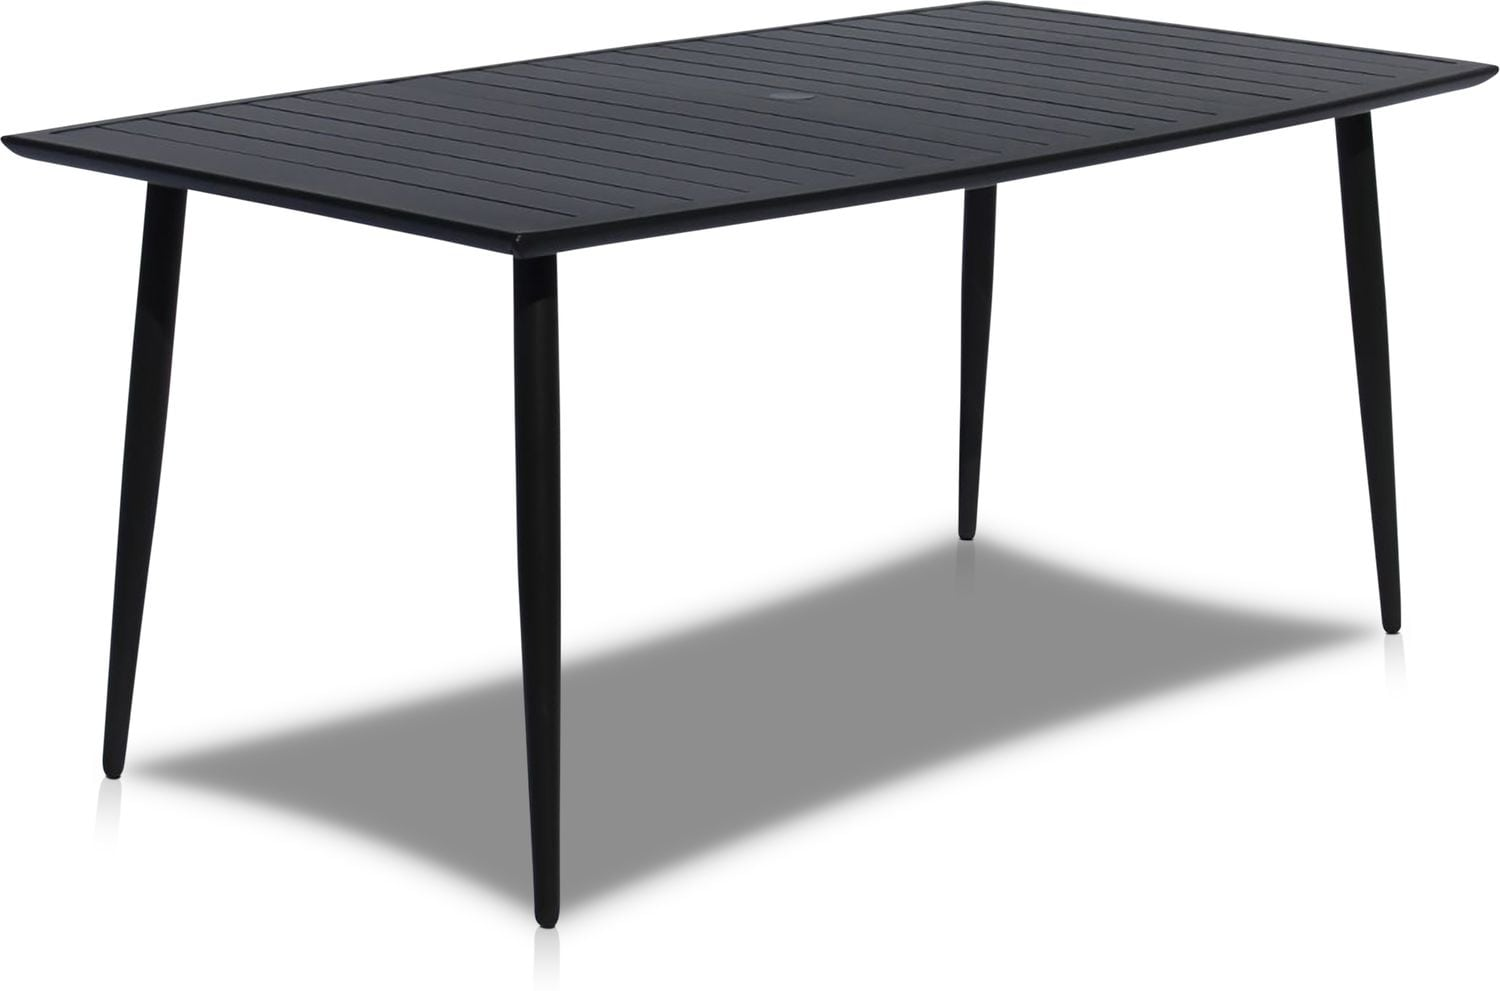 Outdoor Furniture - Paloma Outdoor Dining Table